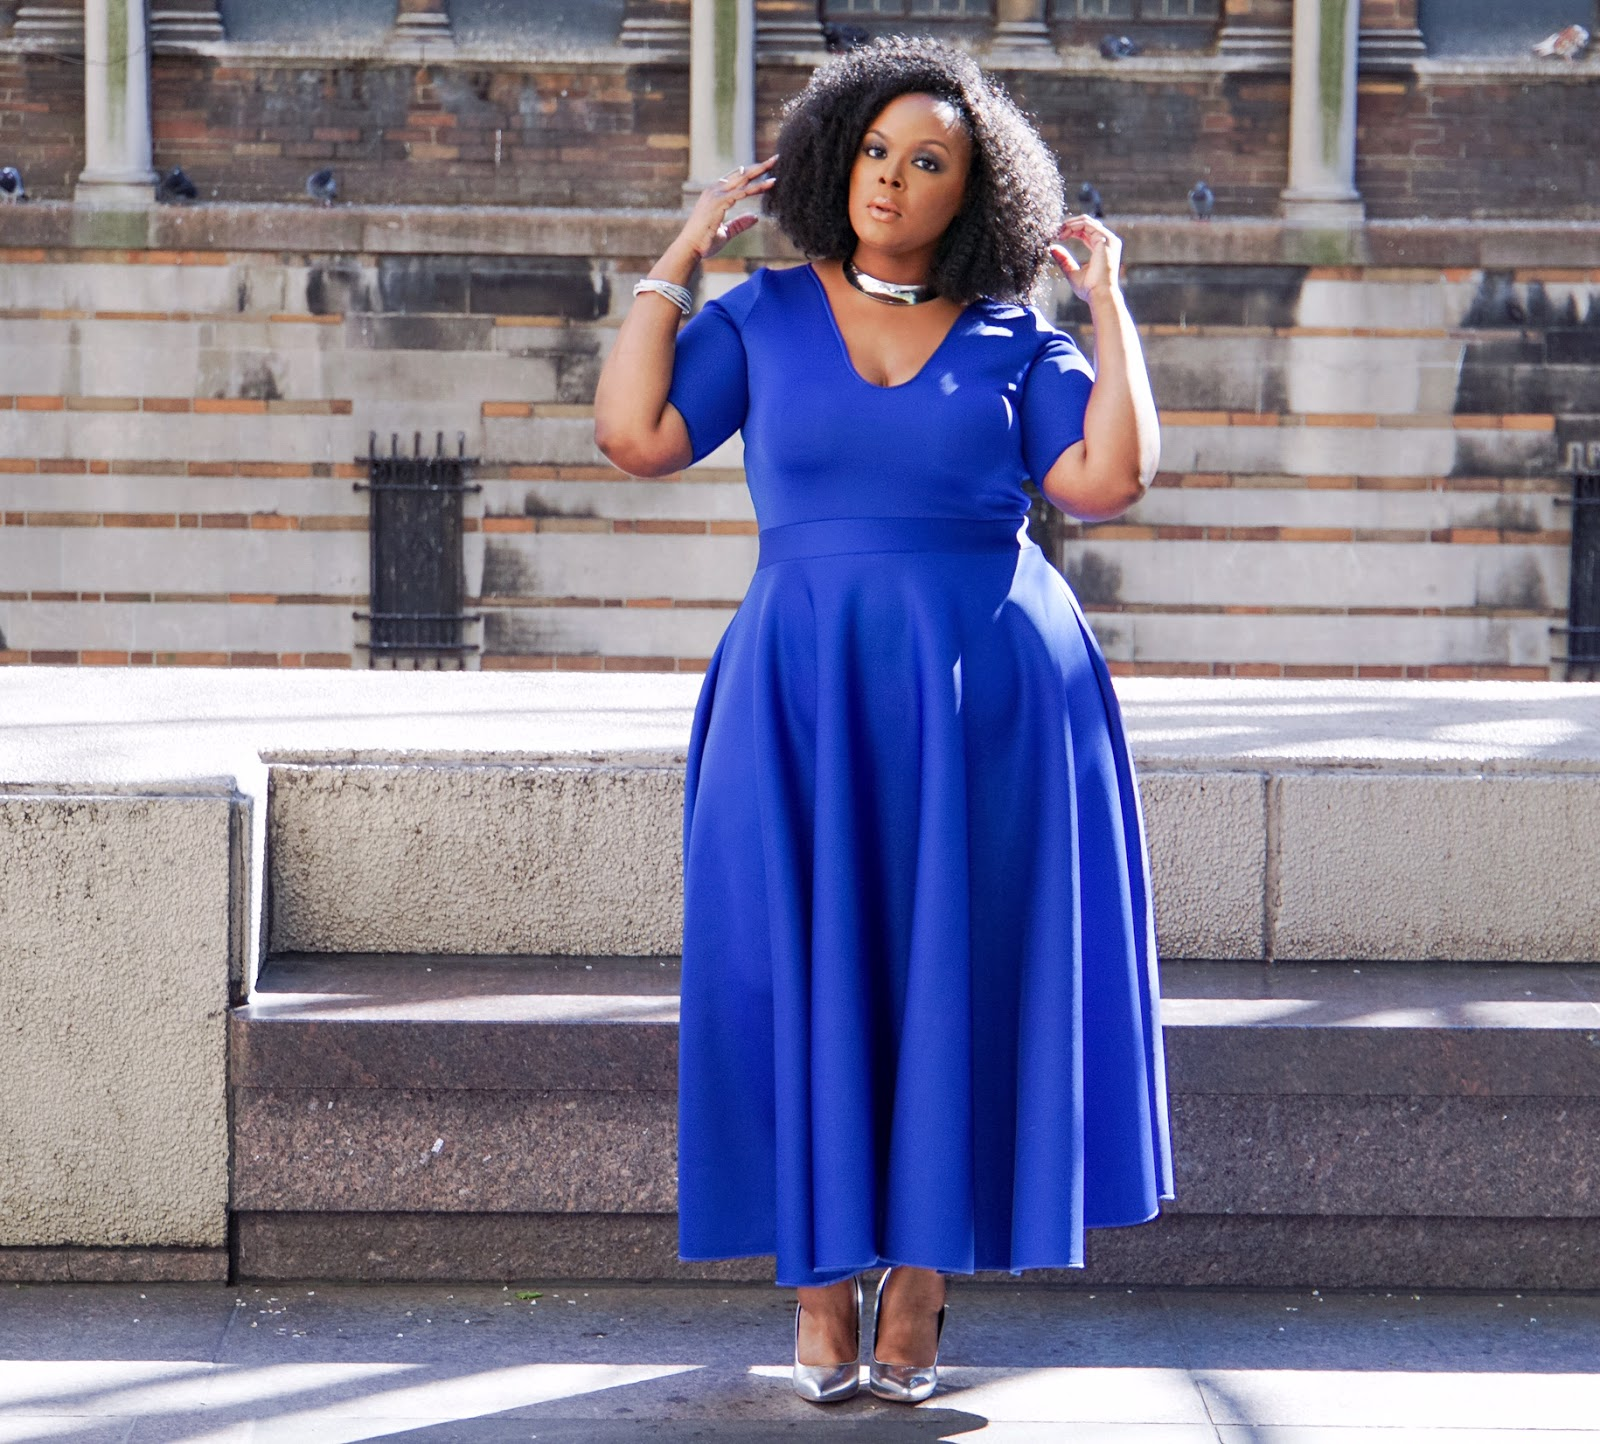 Electric Blue Plus Size Dresses – Fashion dresses